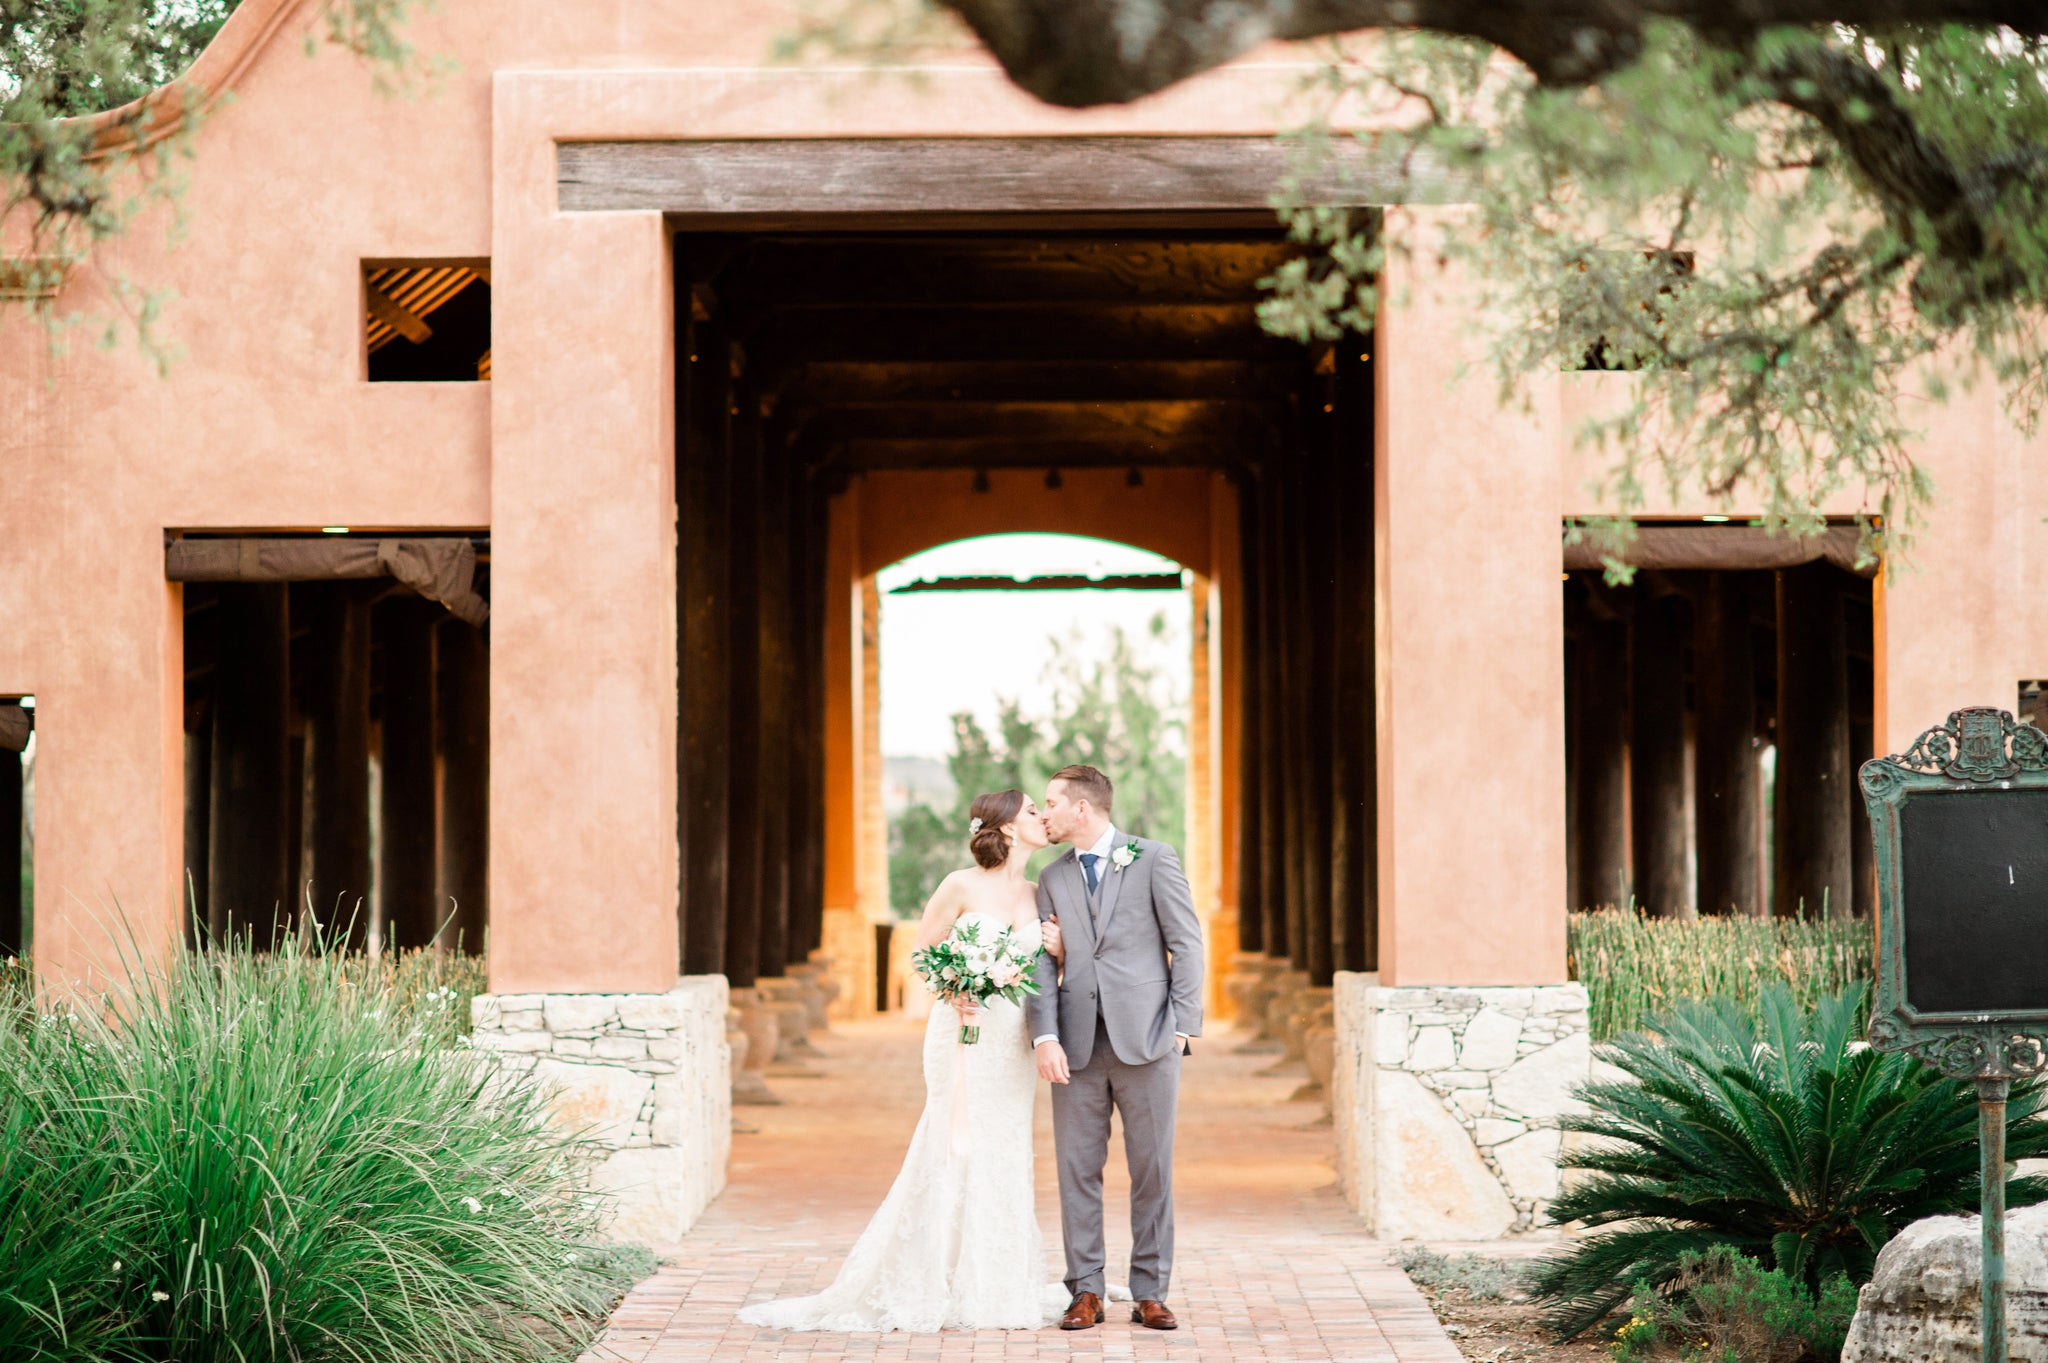 Second Shooter | Wedding Photography - Lindsey Mueller Photography